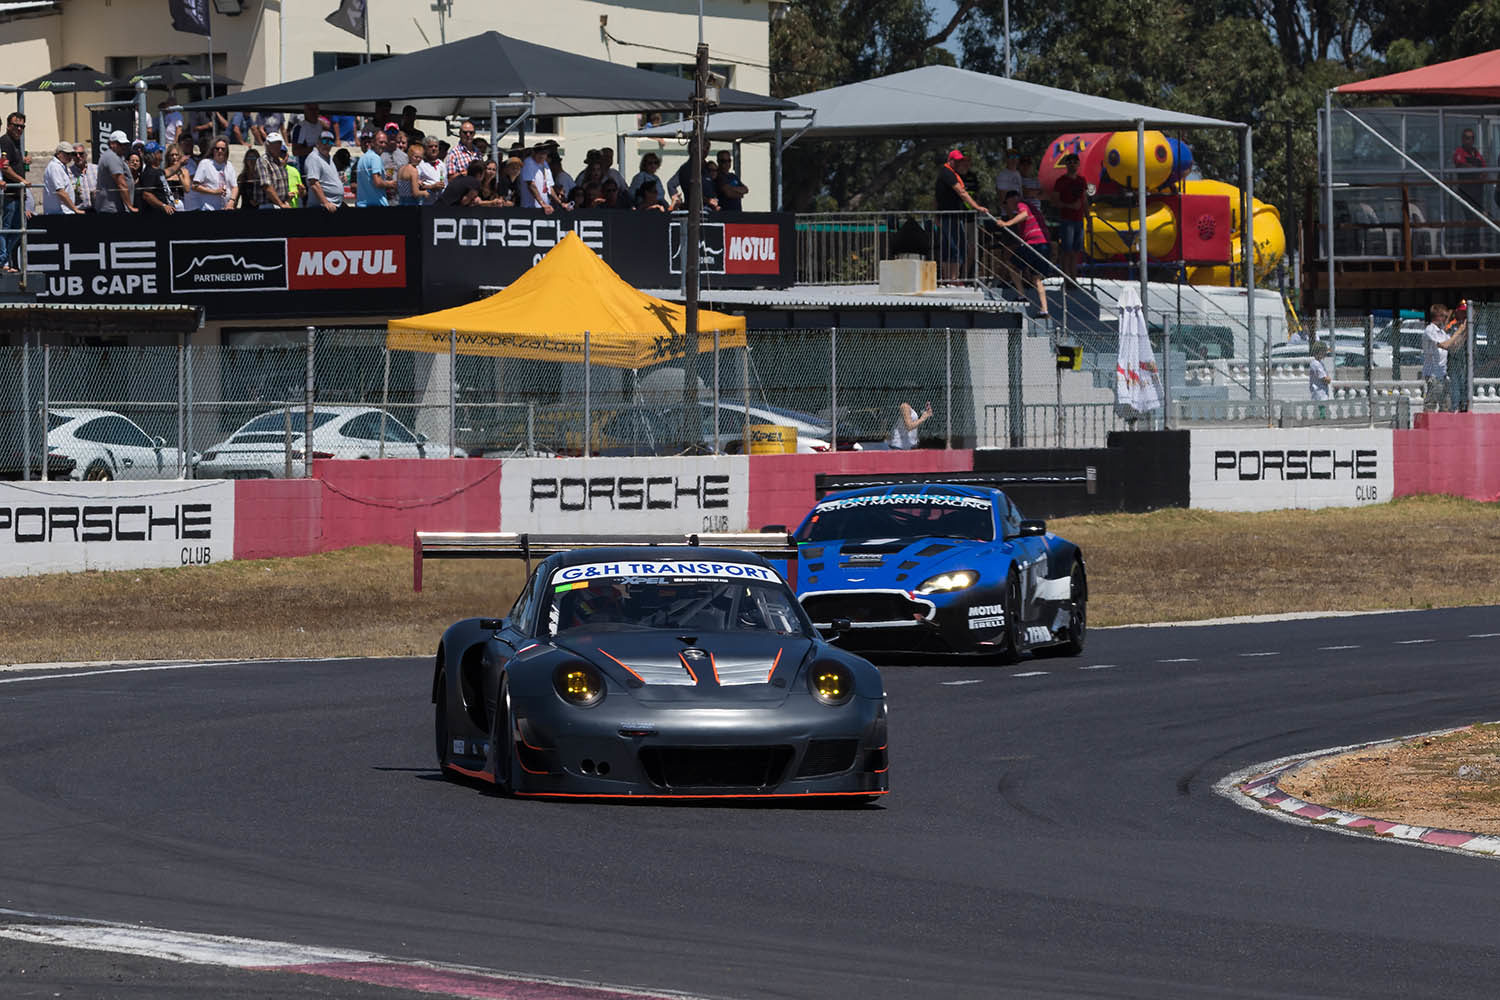 Scribante leads Arangies in race 2